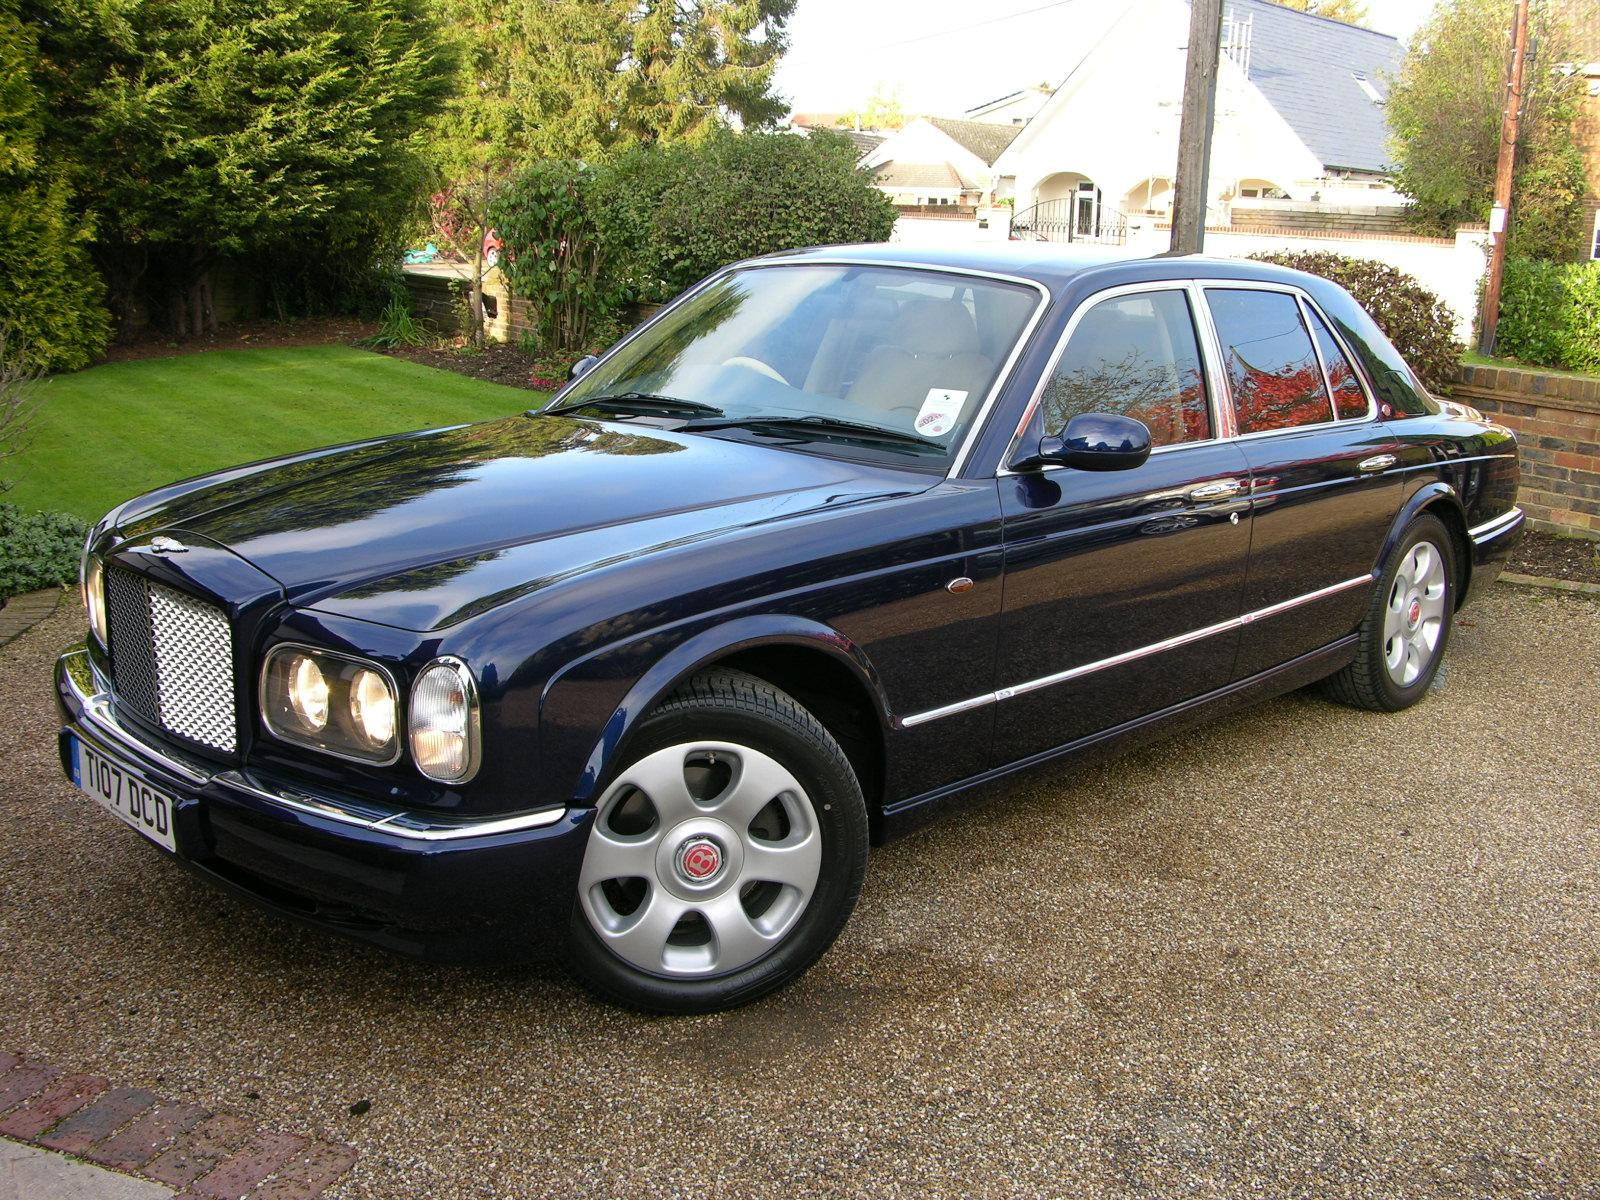 large missouri kansas c listings view by arnage for sale com classiccars cc of bentley in dealer test picture offered std city abc